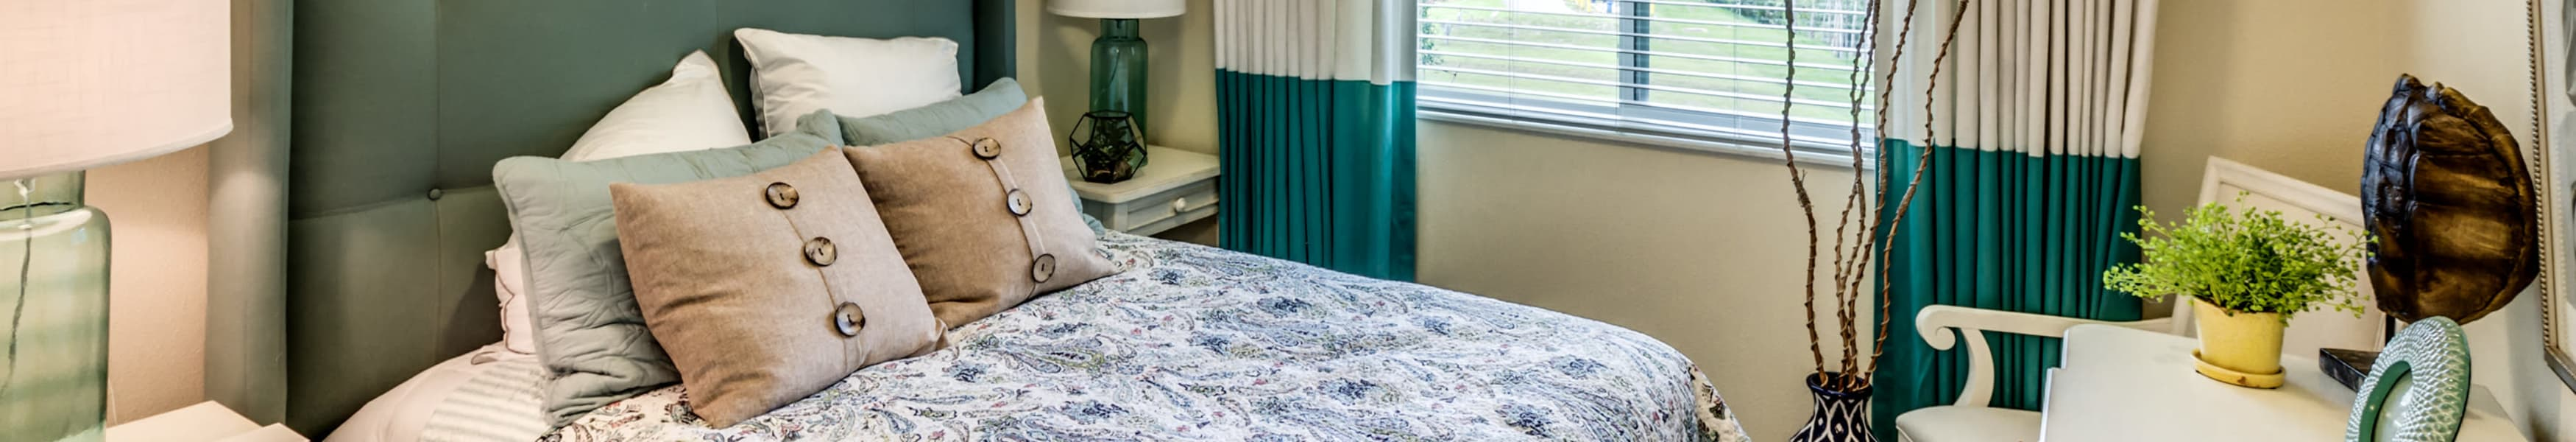 Senior living options at the senior living community in Naples